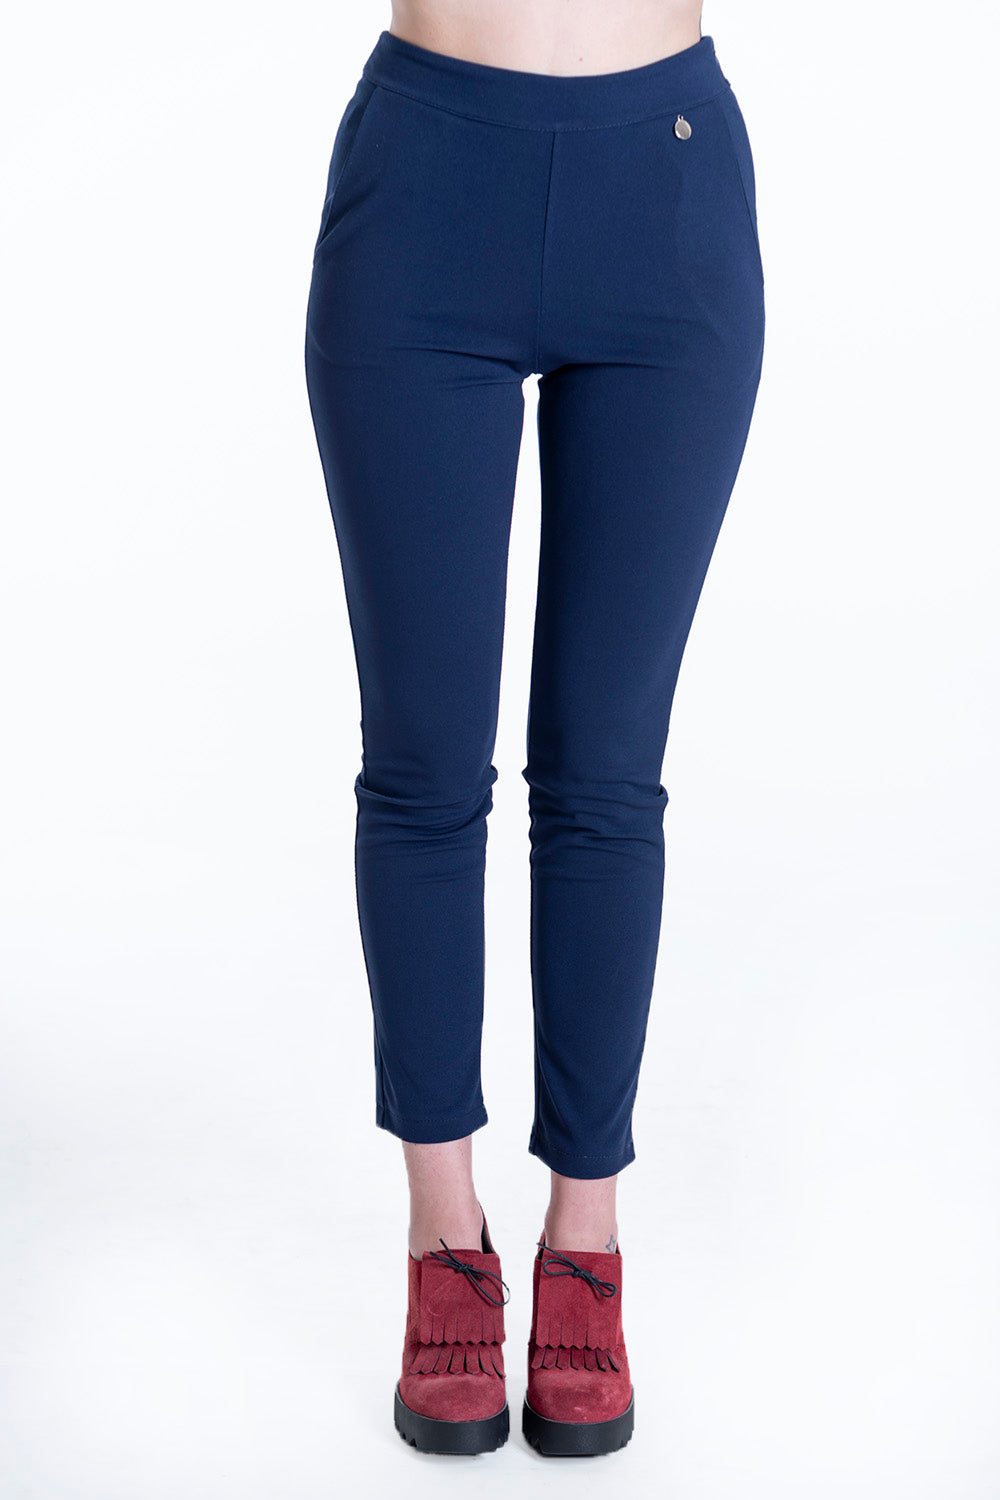 Akè stretch trousers with back pockets